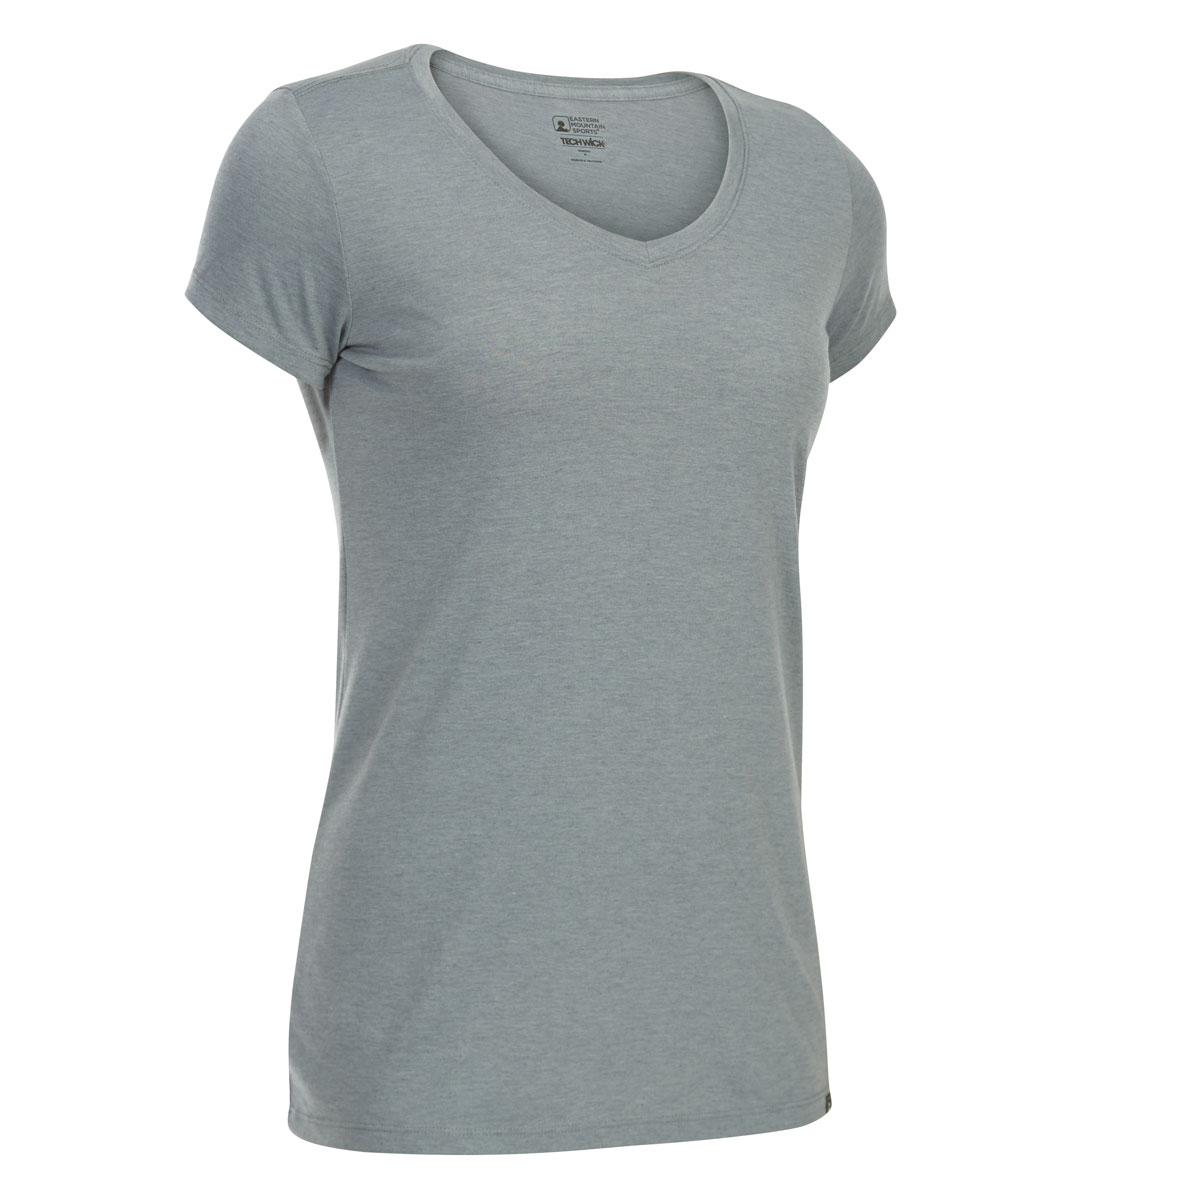 Ems Women's Techwick Vital V-Neck Short-Sleeve Tee - Black, XS